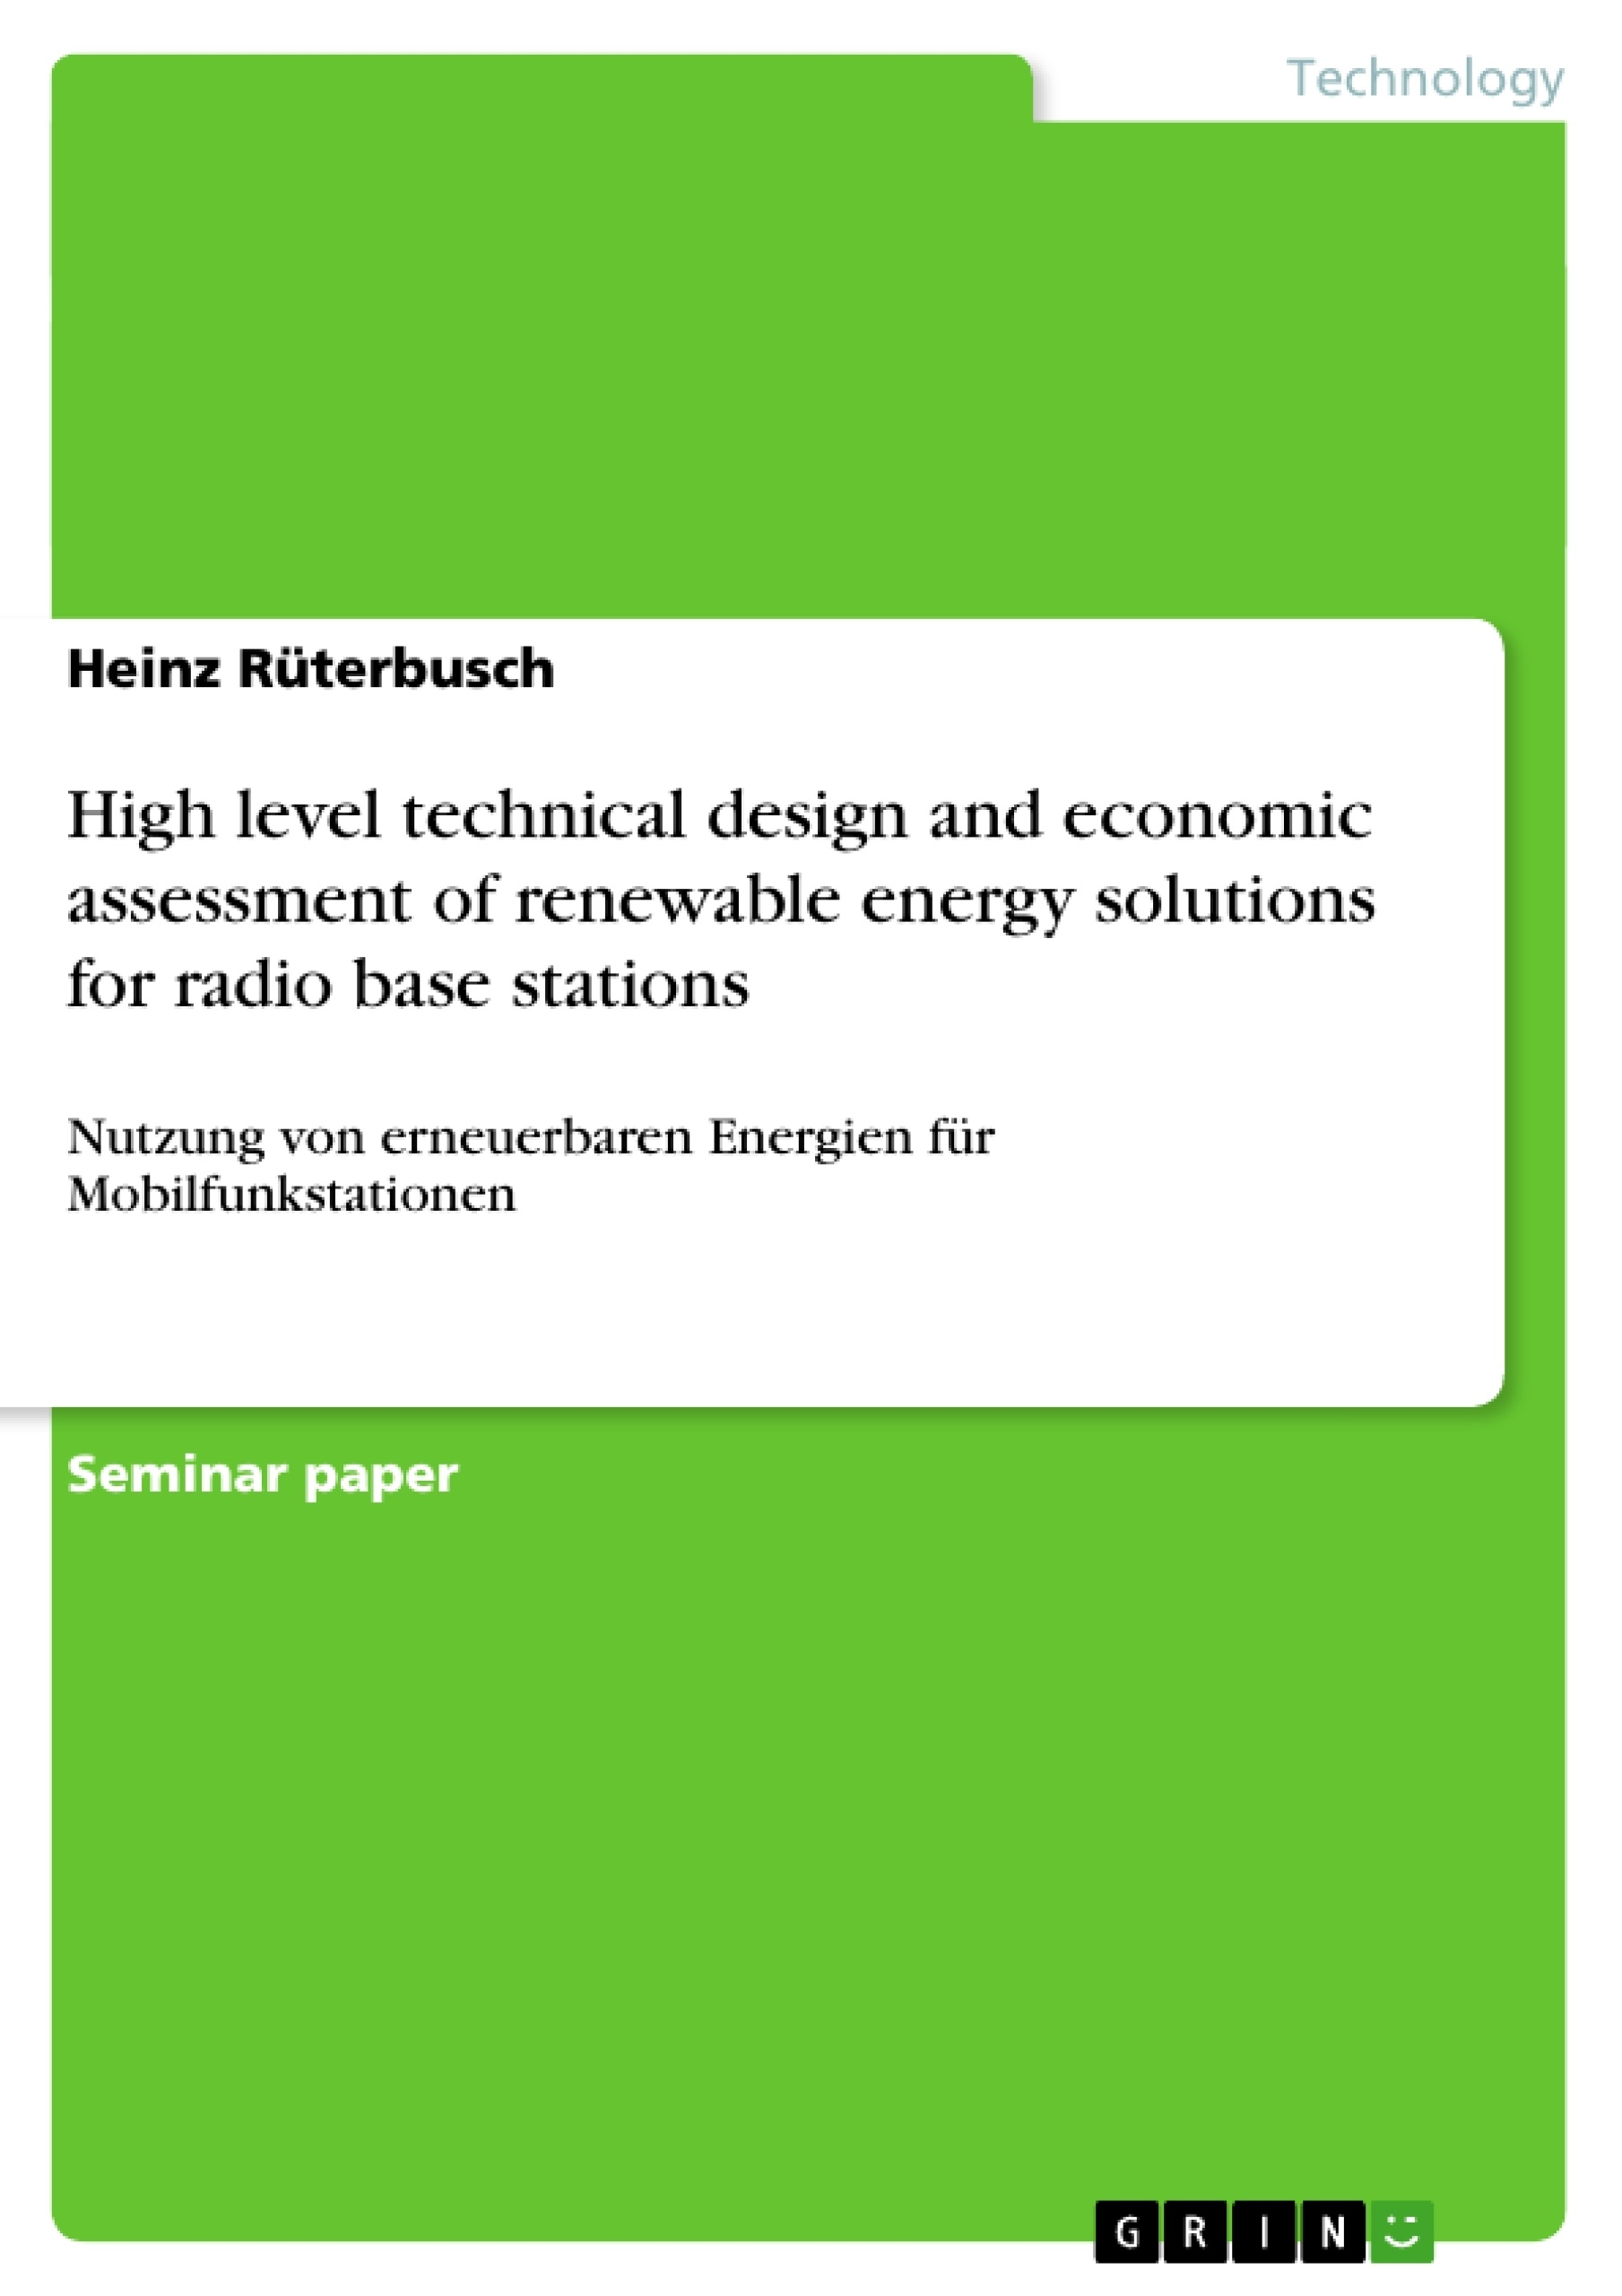 Title: High level technical design and economic assessment of renewable energy solutions for radio base stations